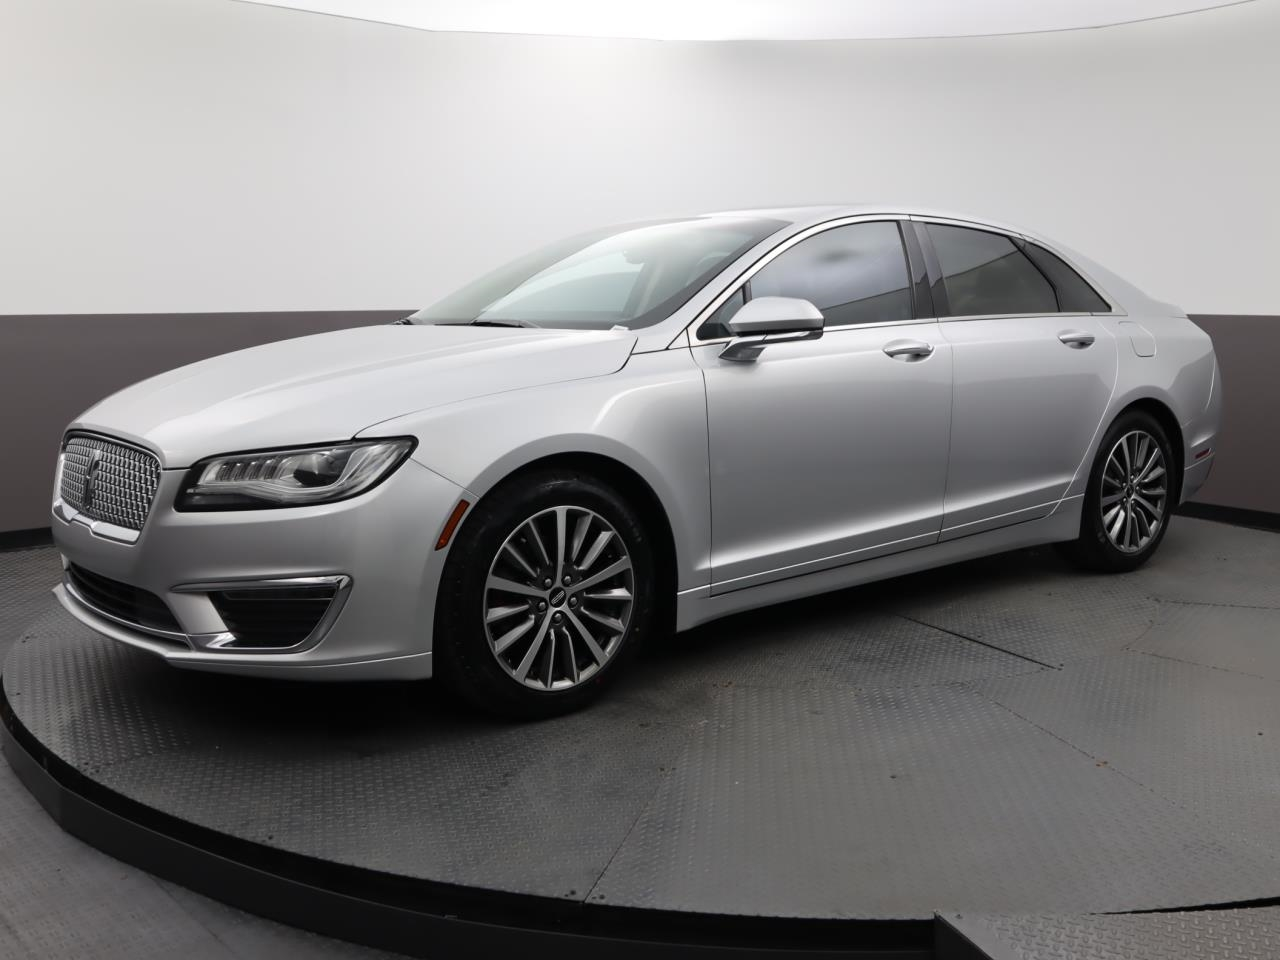 Used LINCOLN MKZ 2017 MIAMI PREMIERE